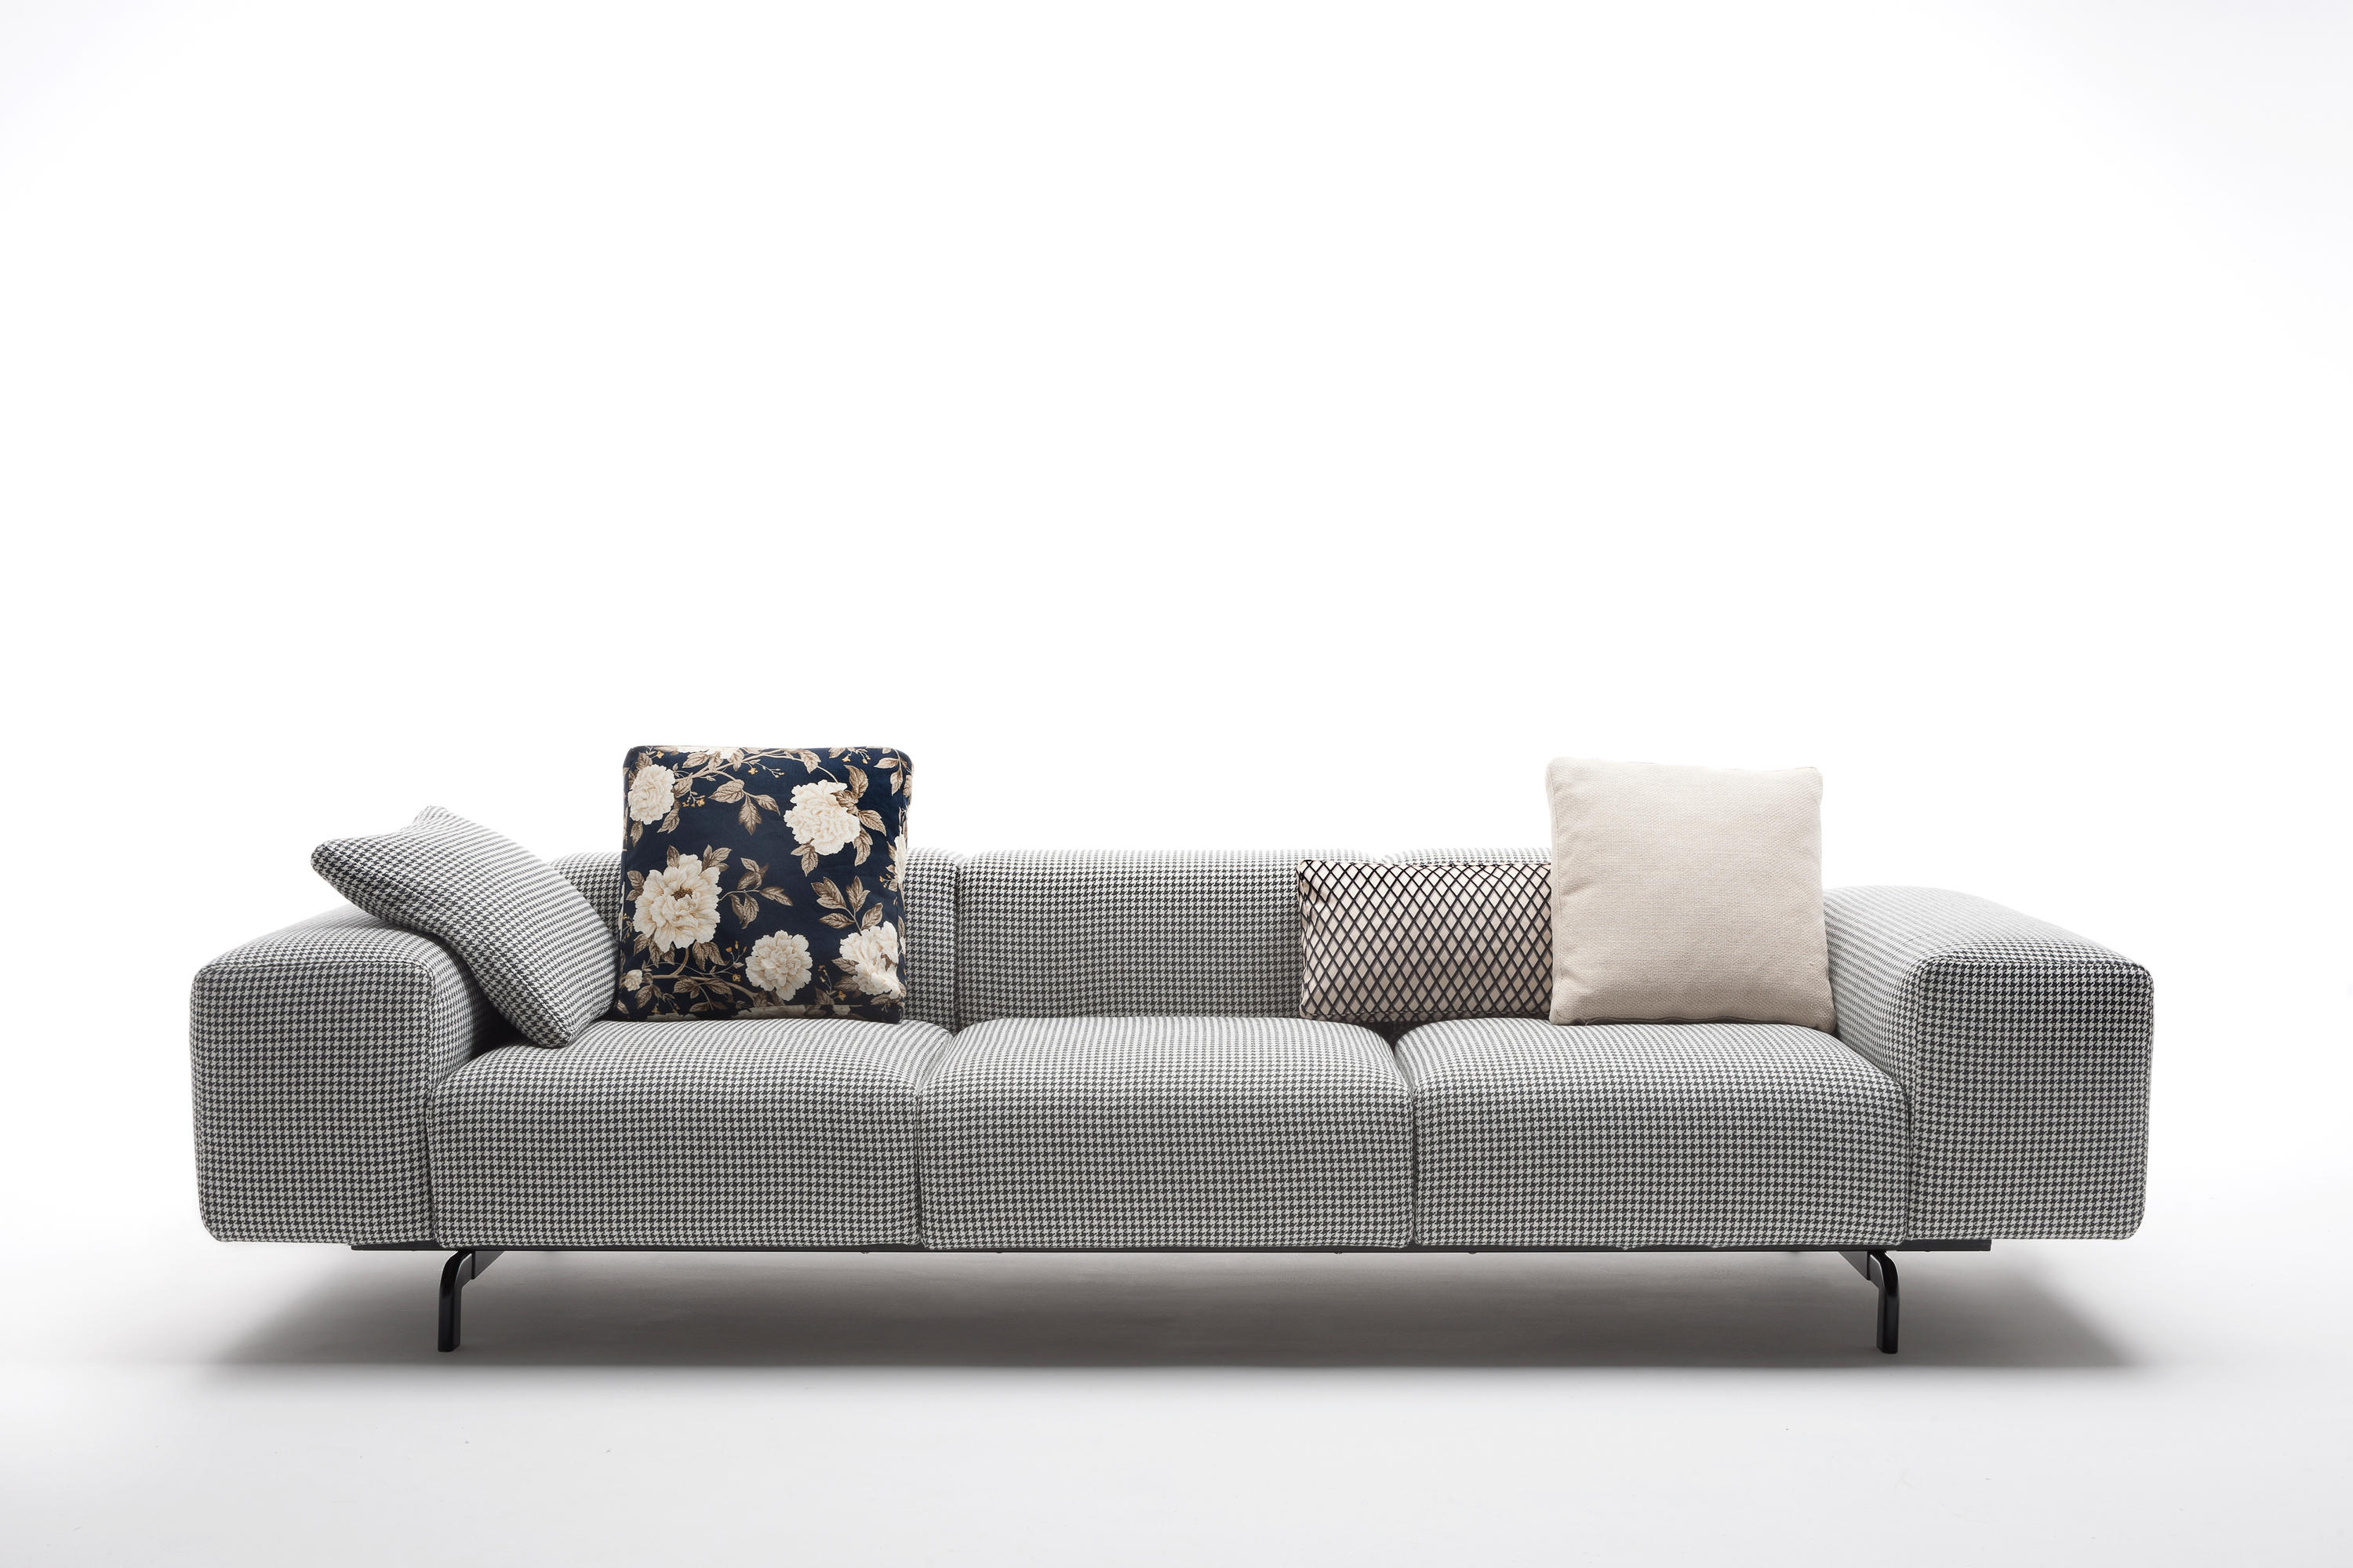 Largo 3 seater sofa 301 x 96 x 69cm